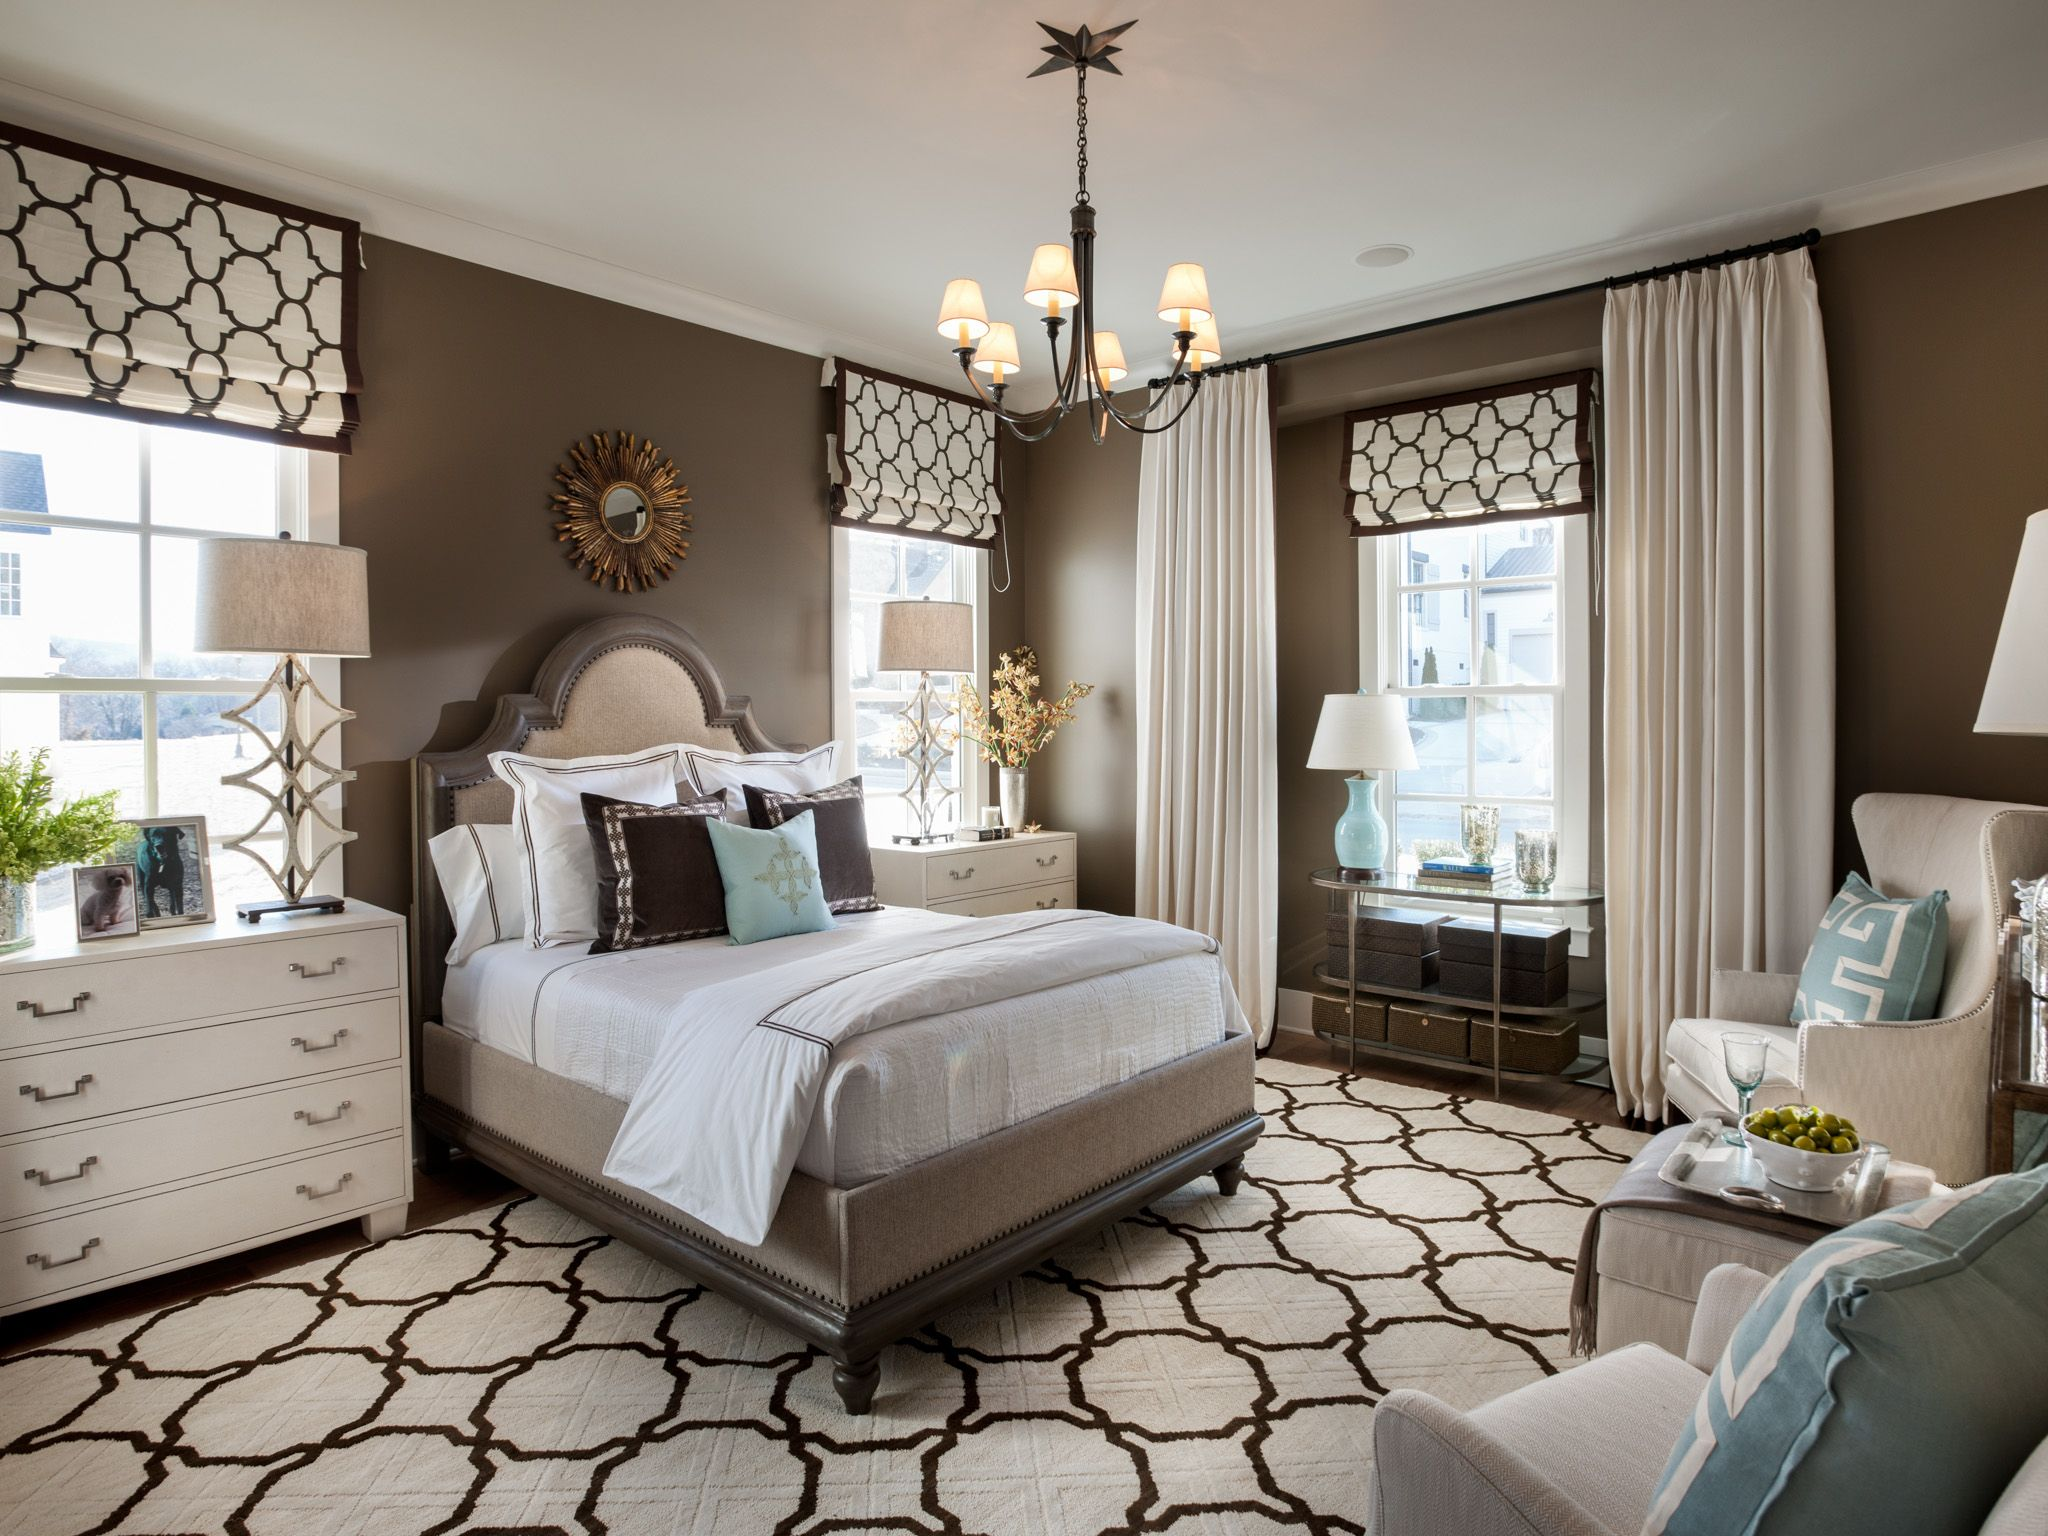 10 Bedroom Trends To Try Bedroom Pictures Hgtv And